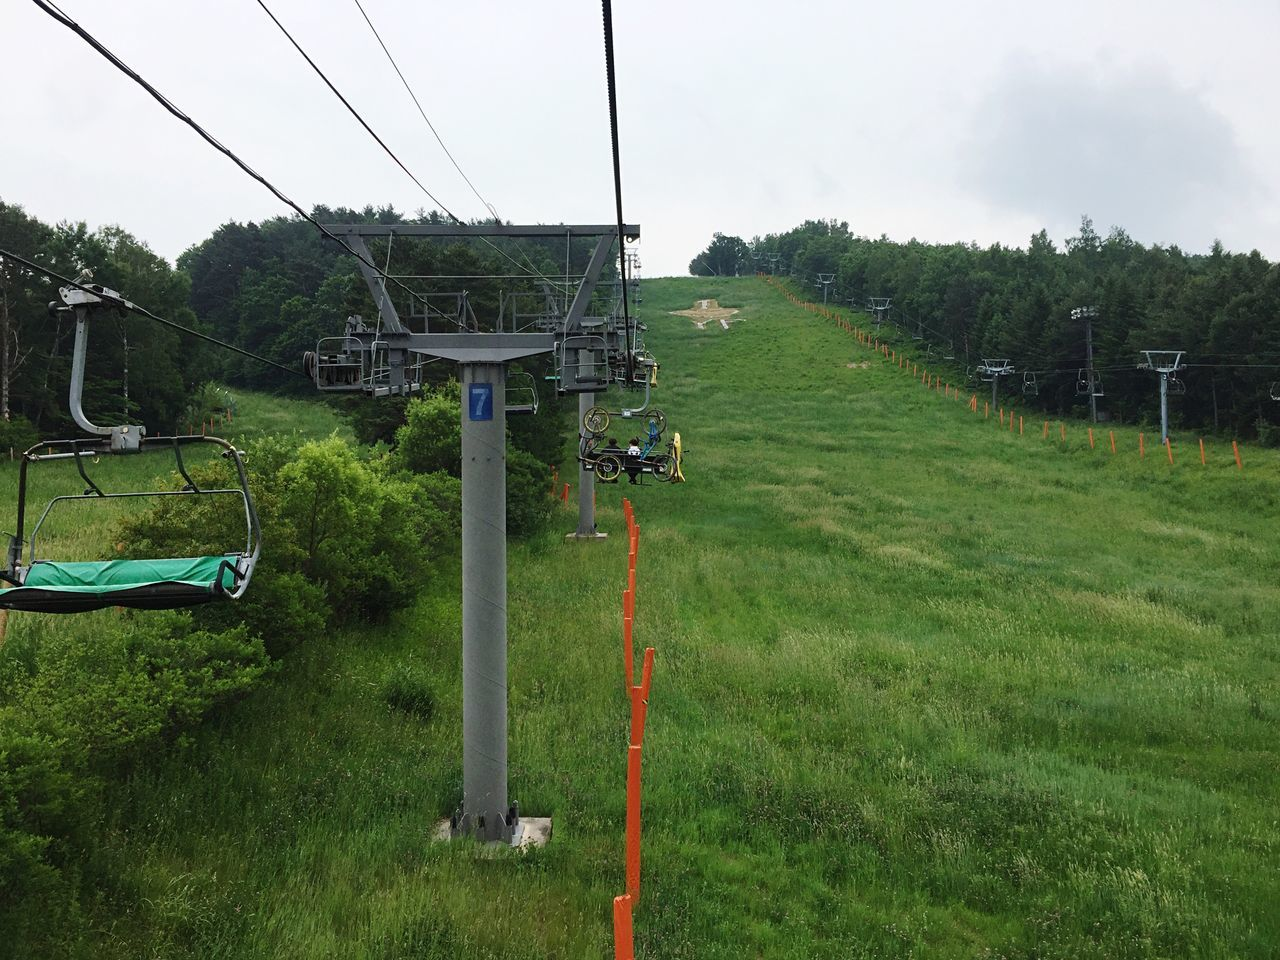 Ski Resort in Summer Cable Sky Tree Day Outdoors Field No People Grass Nature Telephone Line Beauty In Nature Cable Car Ski Resort